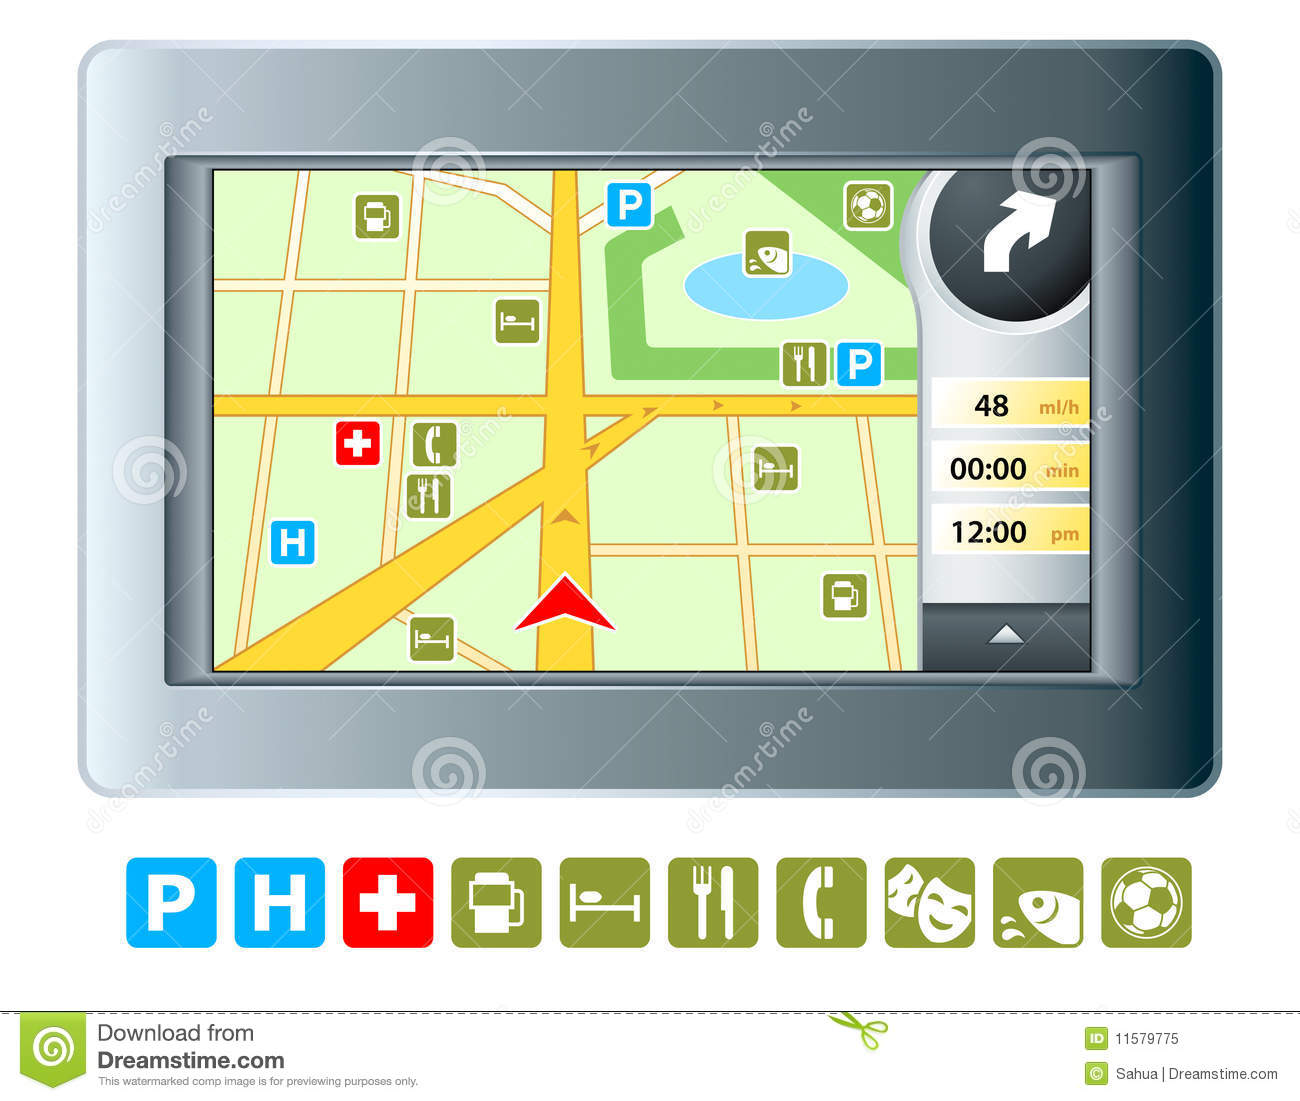 Gprs navigation free download of android version | m. 1mobile. Com.